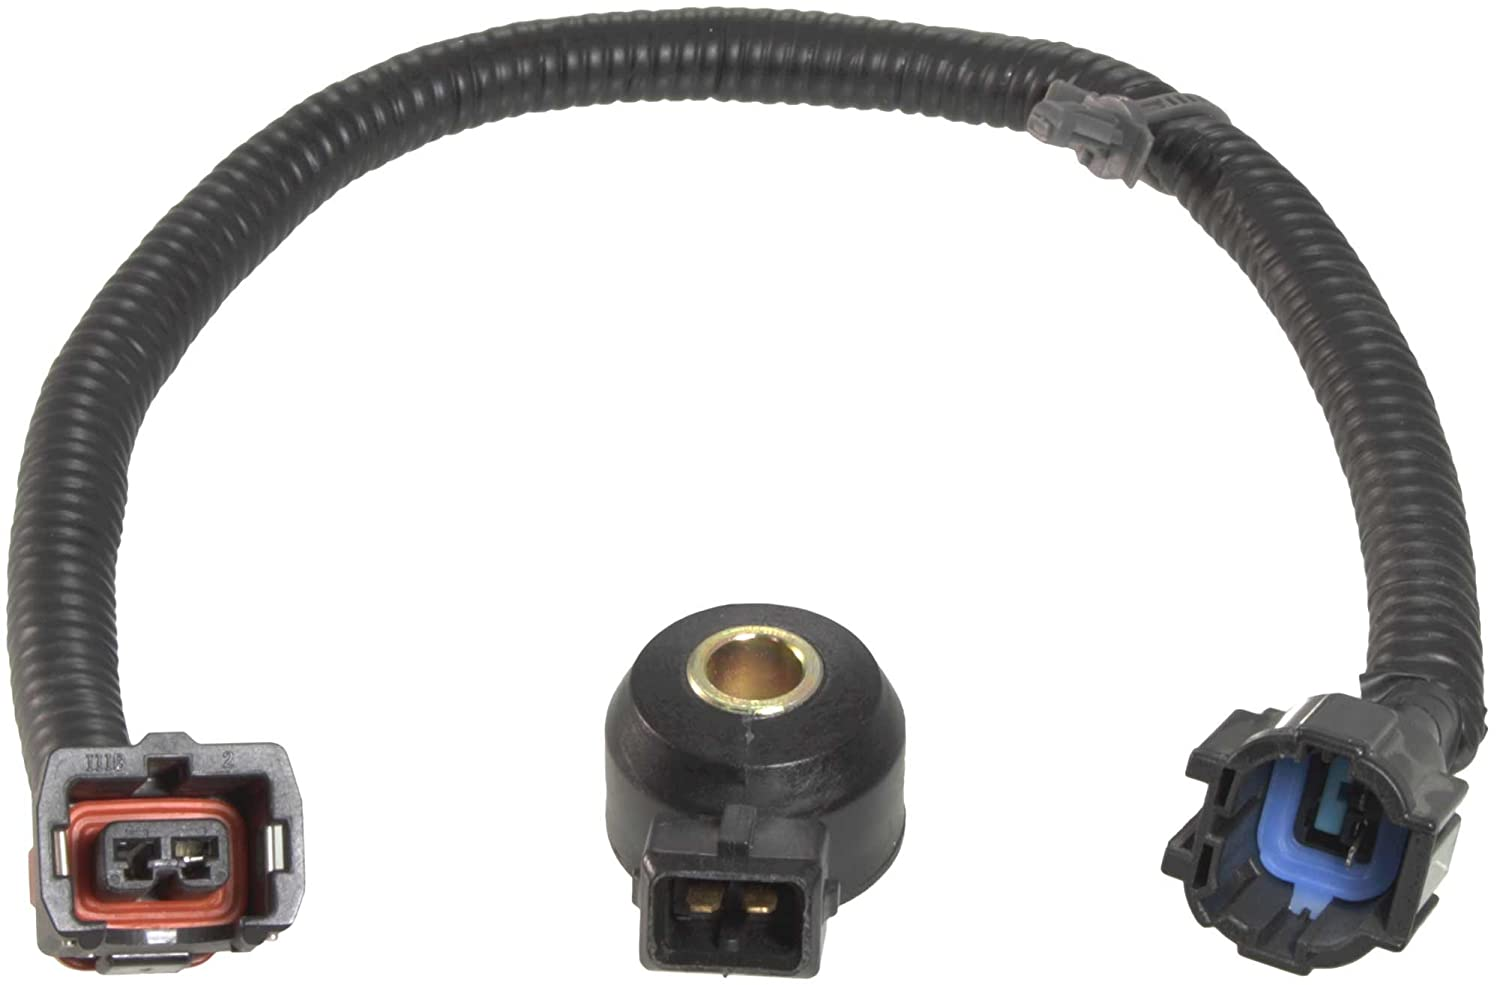 Apdty 028252 Knock Sensor With New Wiring Harness Nissan Wire Pigtail Connector Fits Select 1990 2002 Or Infiniti Mode Ls Listed In The Compatibility